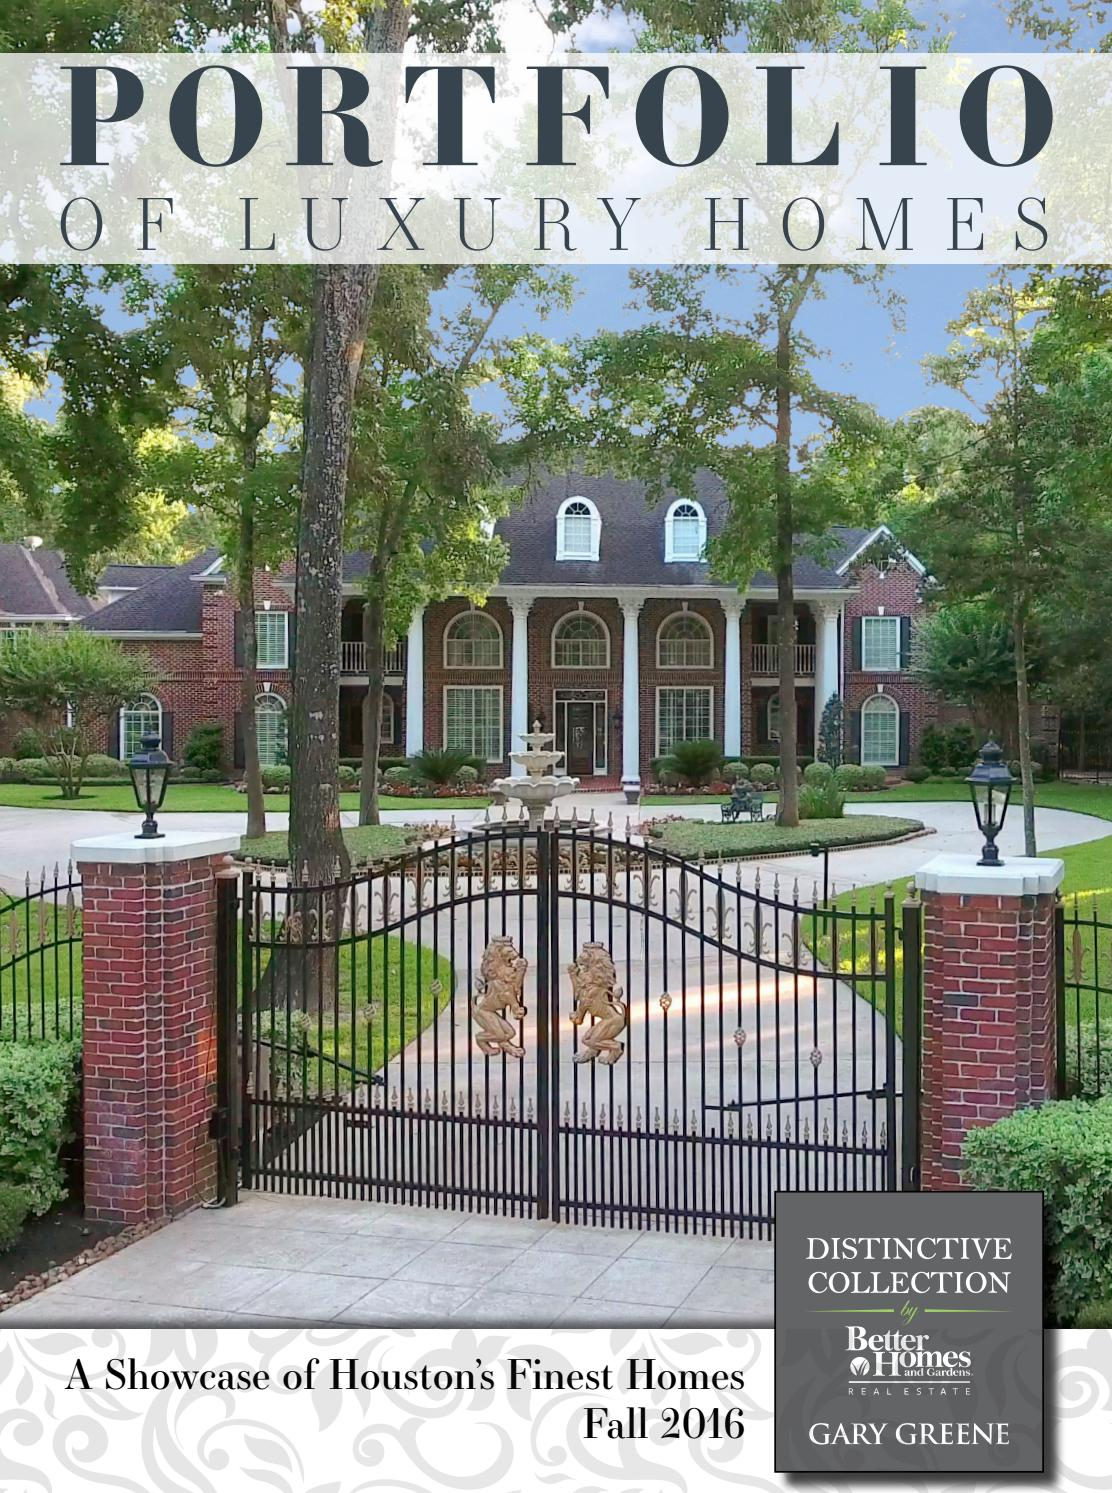 Portfolio Of Luxury Homes Fall 2016 Better Homes And Gardens Real Estate Gary Greene By